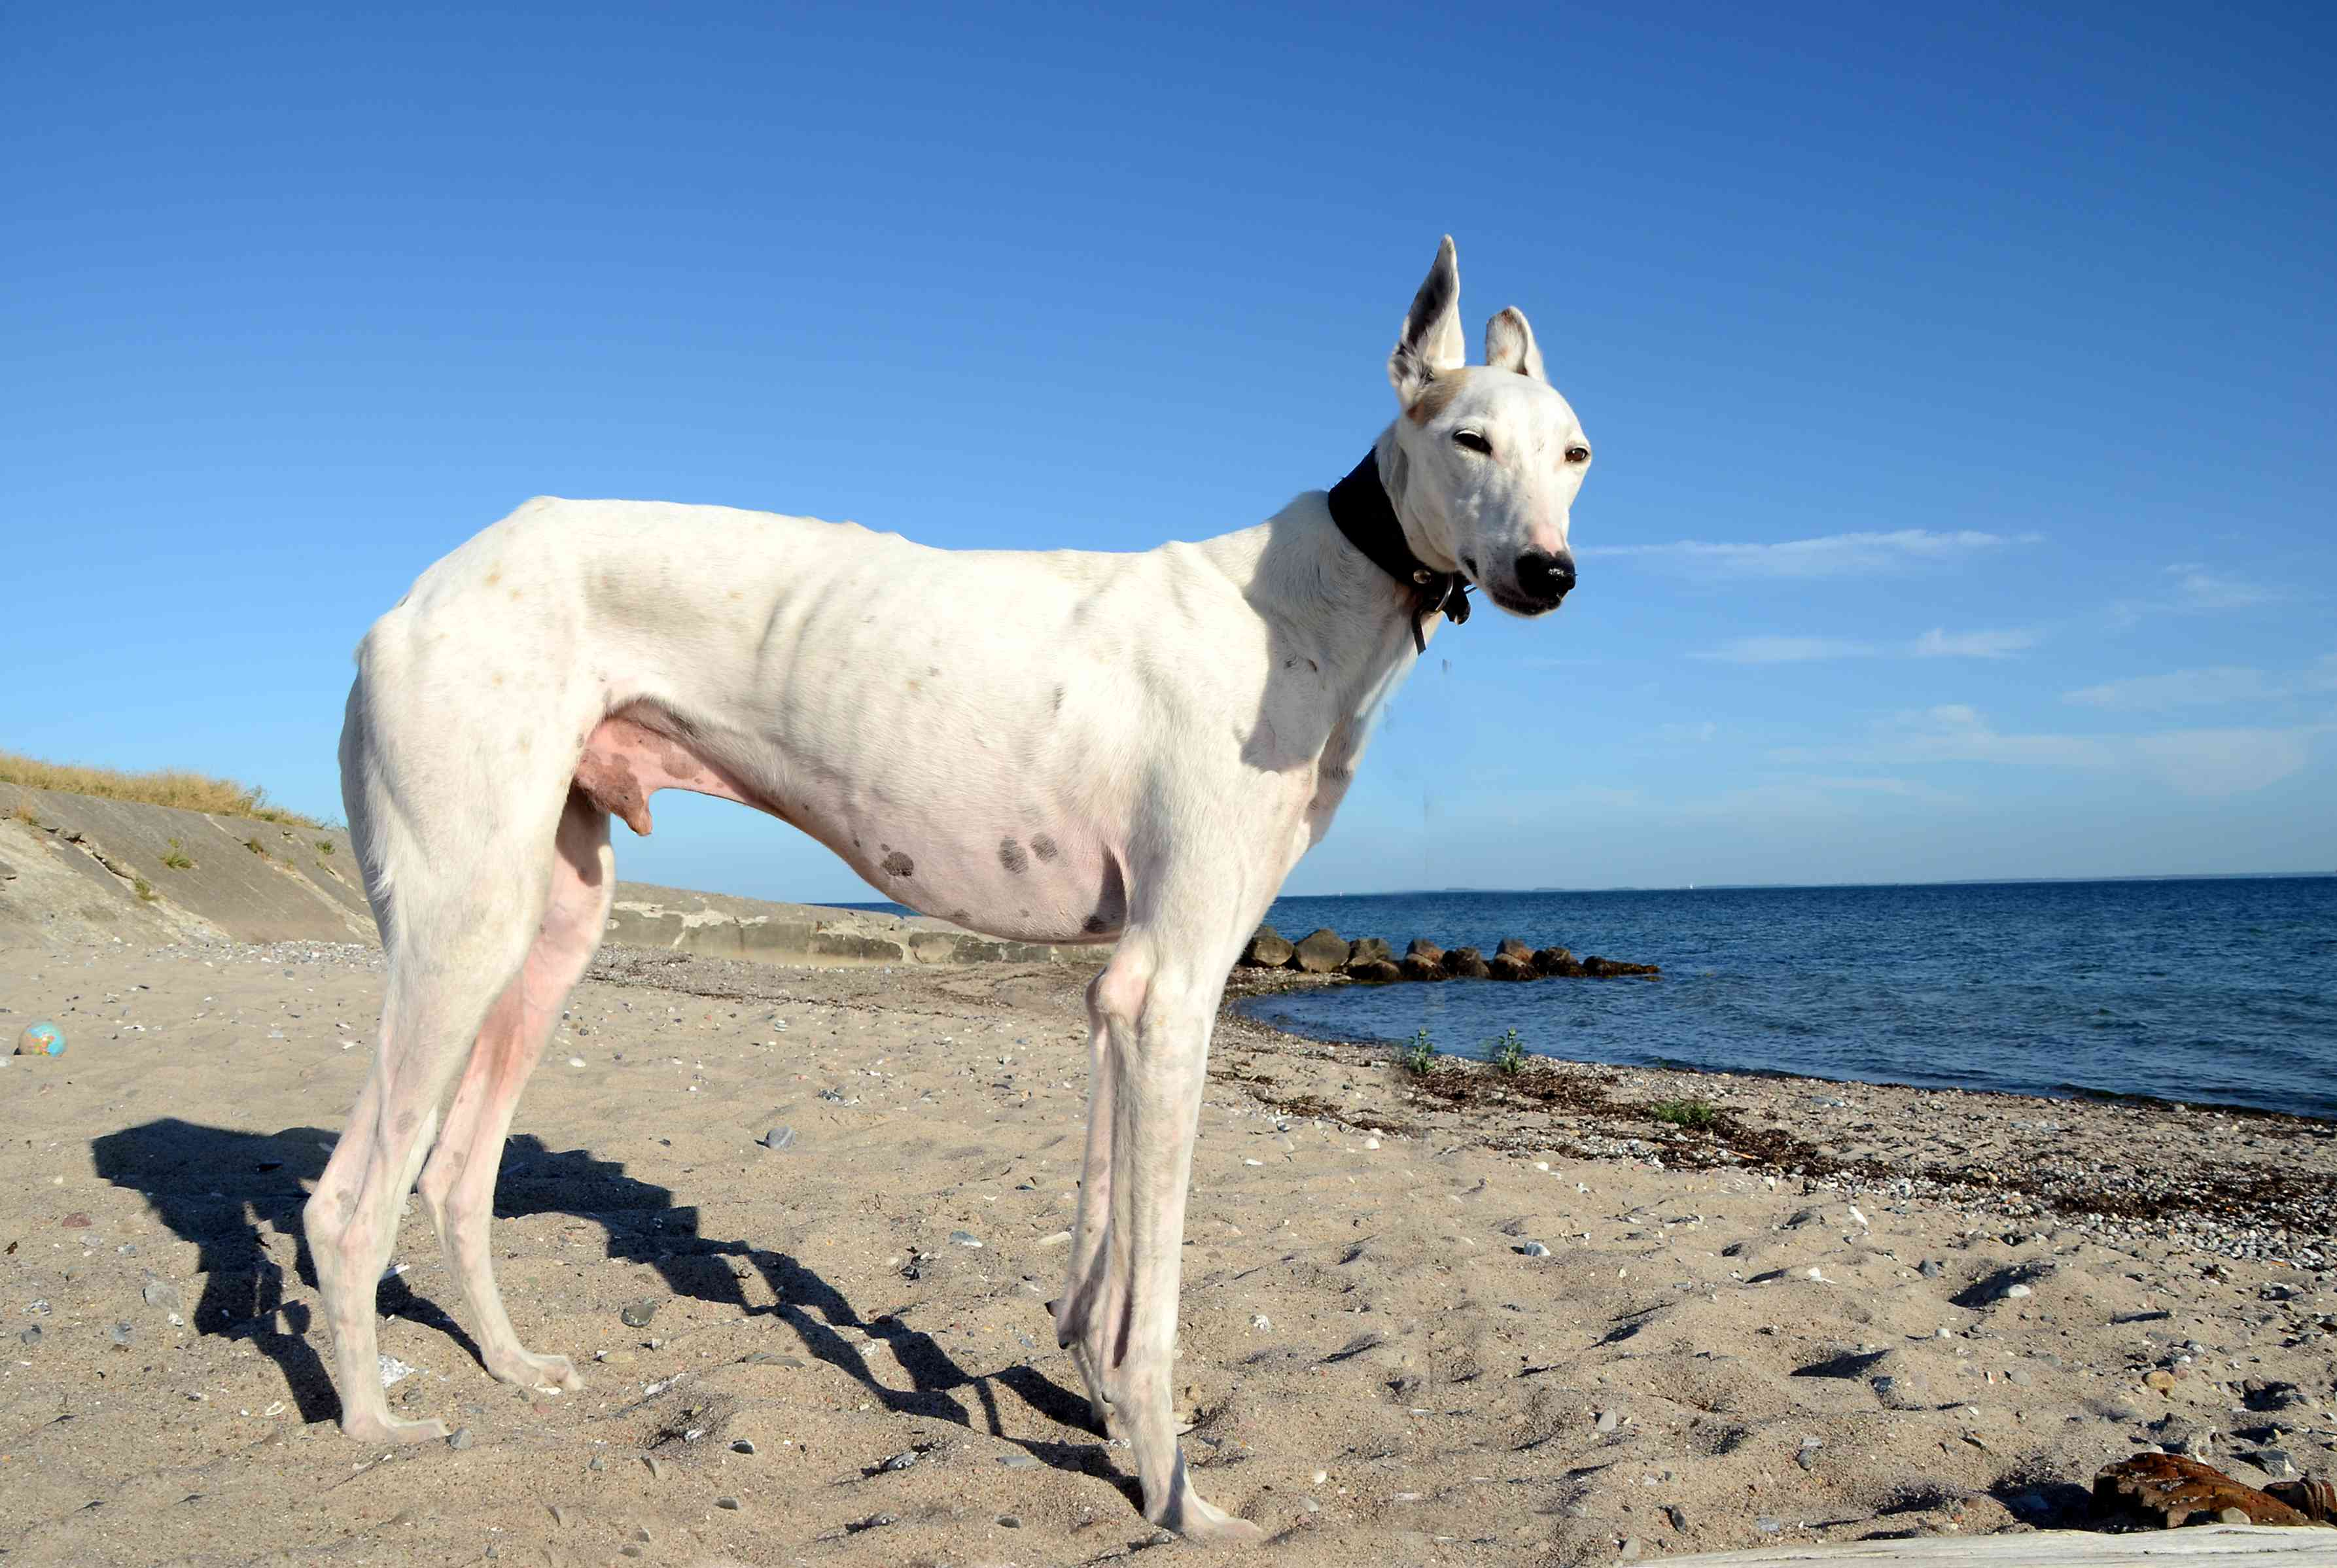 A white podenco standing on the beach